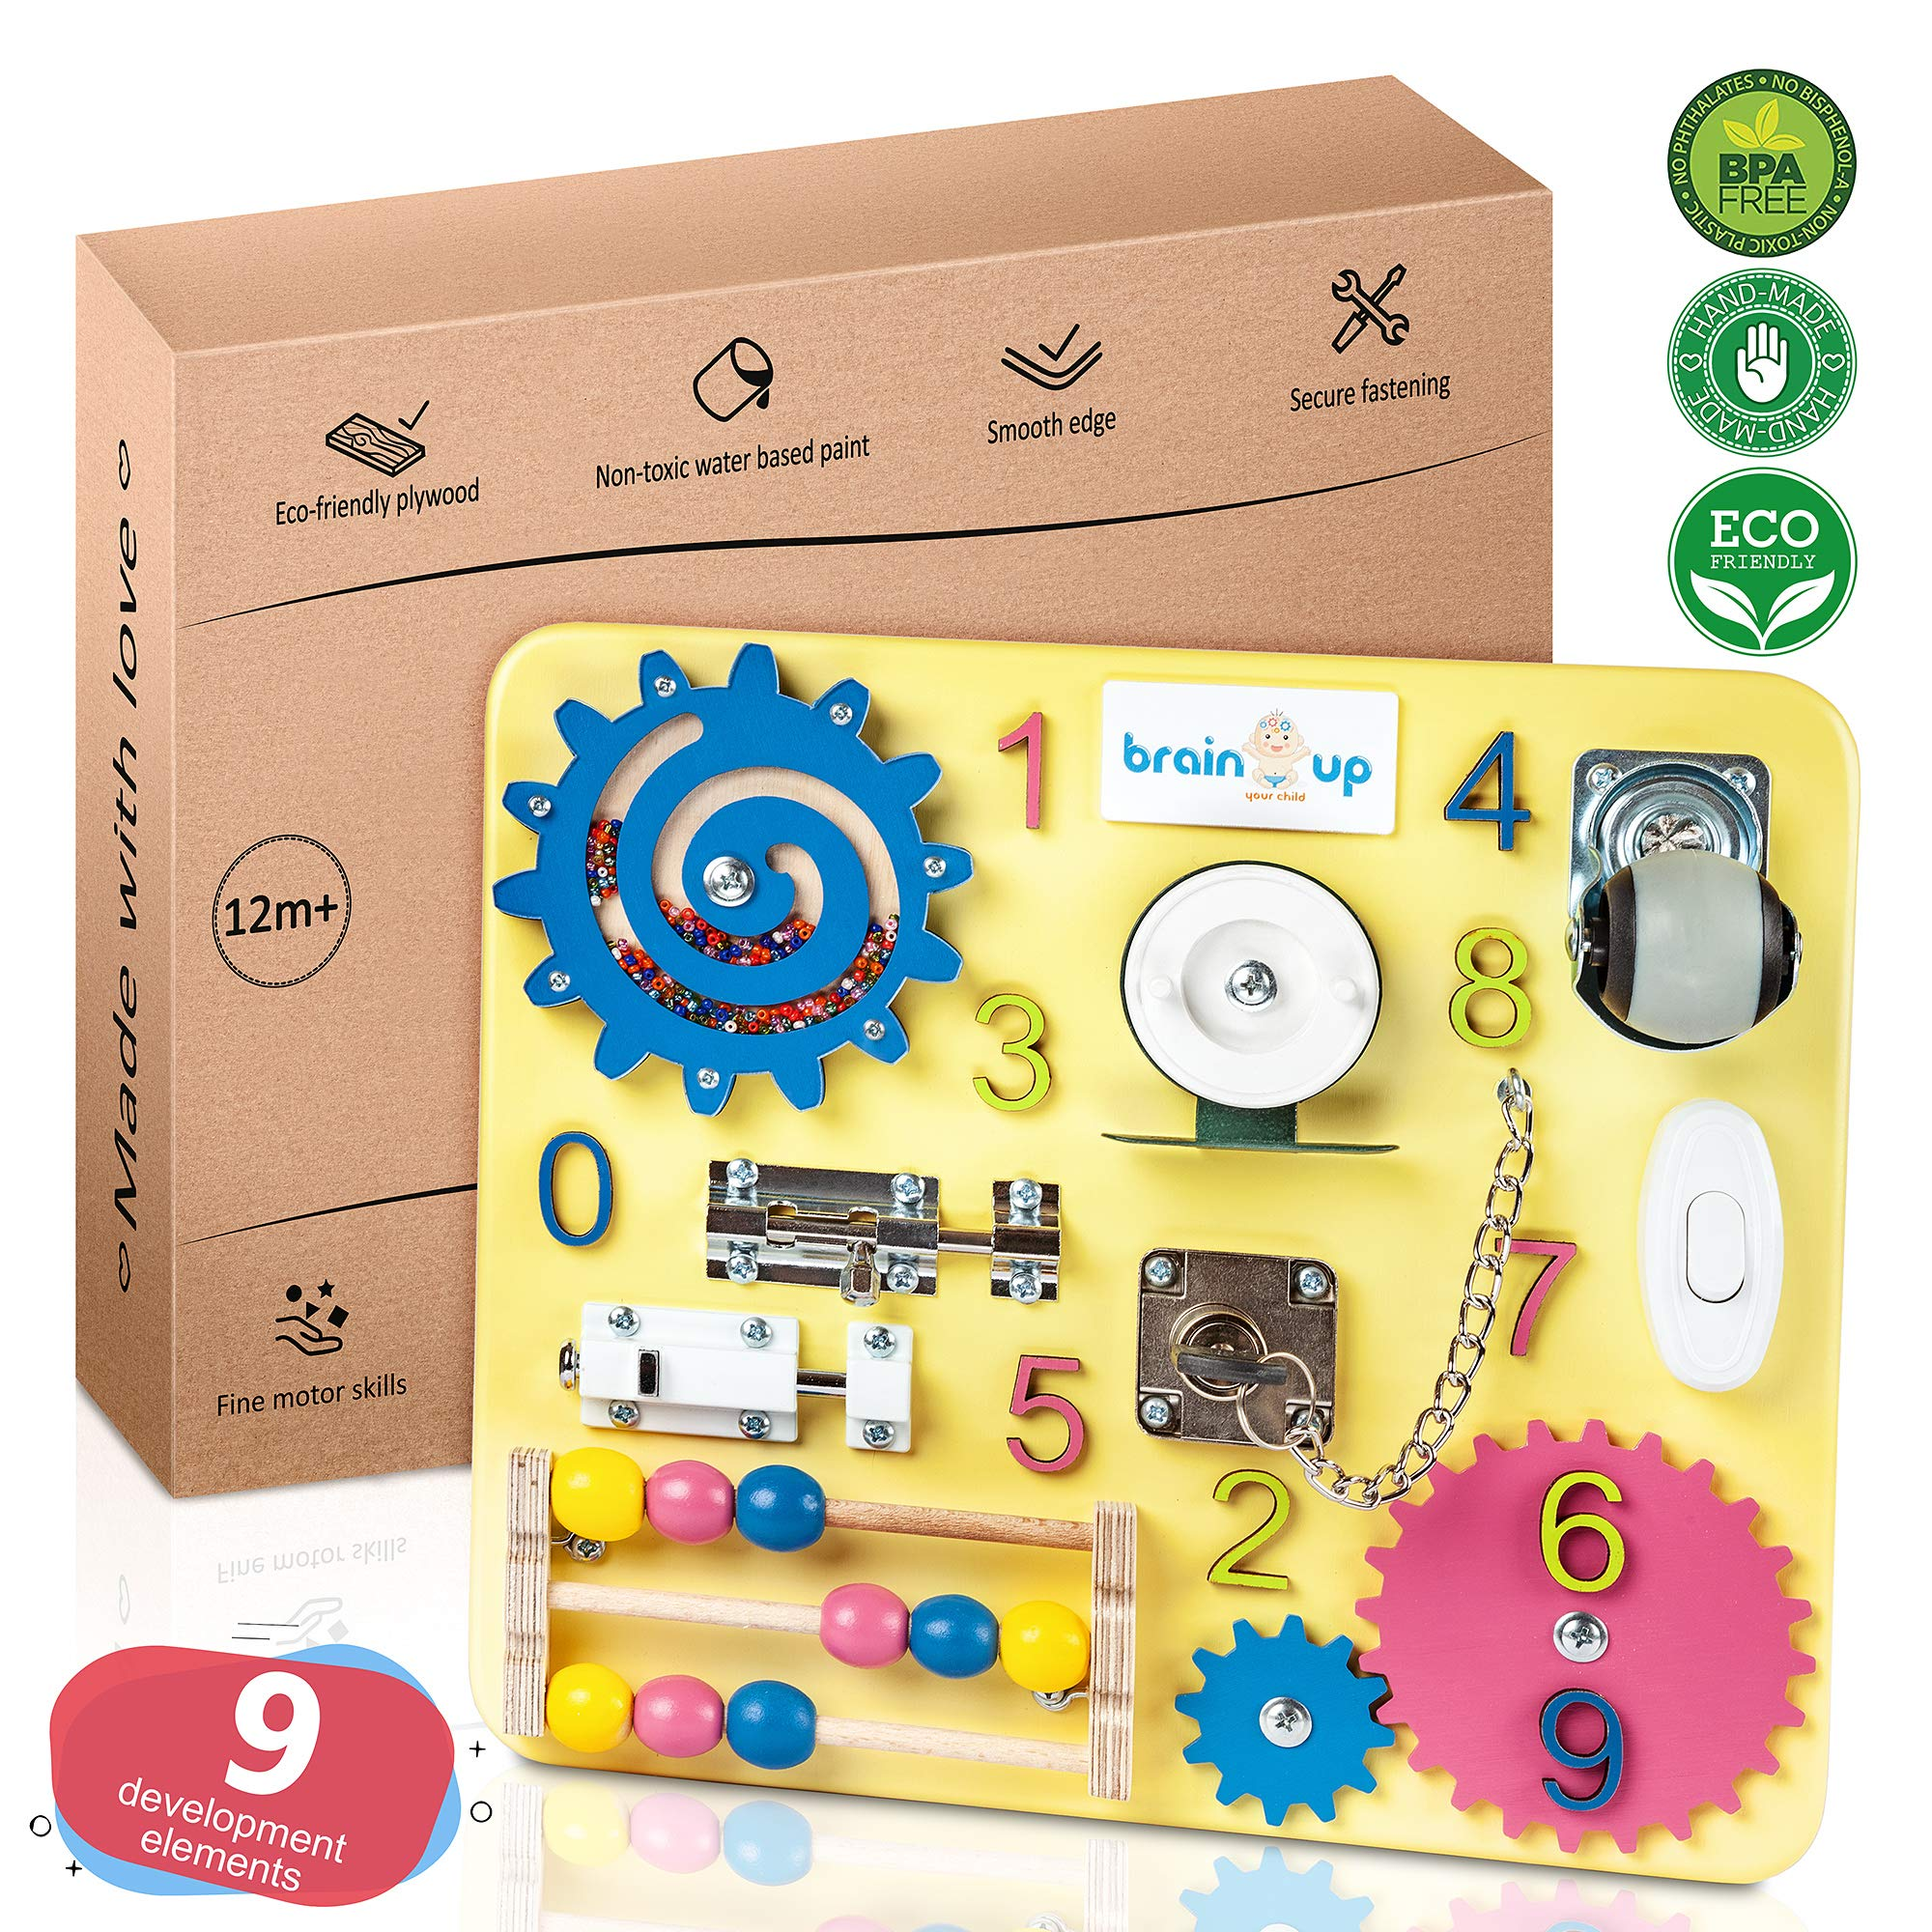 Busy Board - Busy Board for Toddlers - Sensory Board - Busy Board for Kids - Activity Board for Toddlers - Locks and latches Activity Board - Baby Activity Board - Boy and Girl 12-18 Month by Brain Up Toys